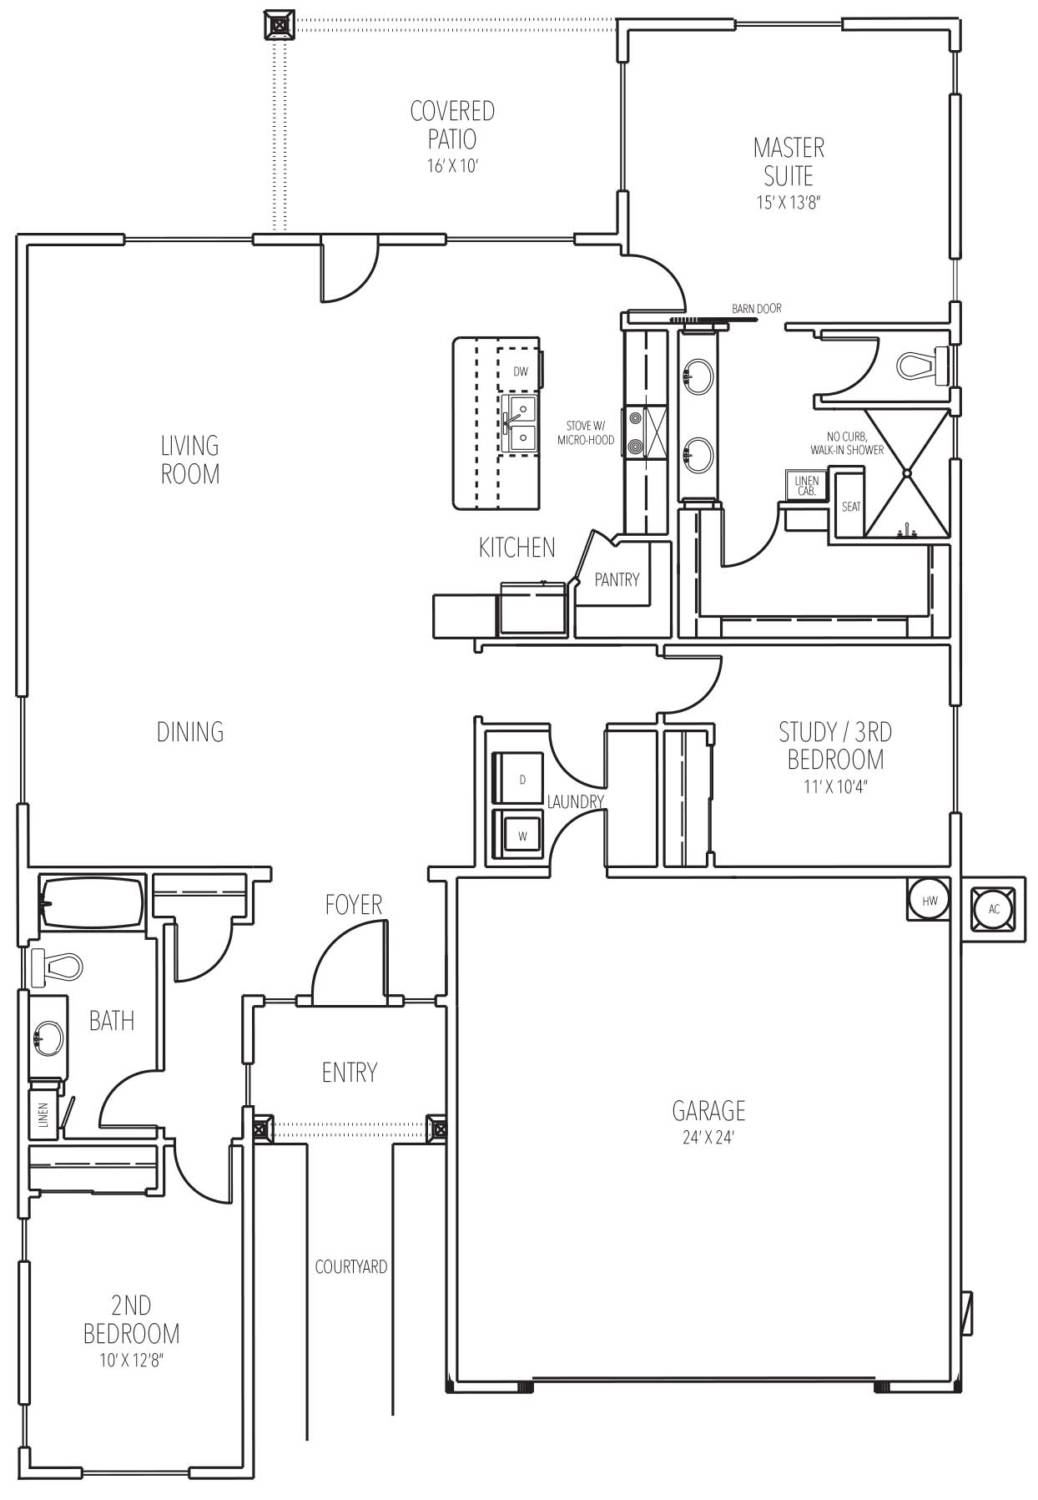 Scion floor plan